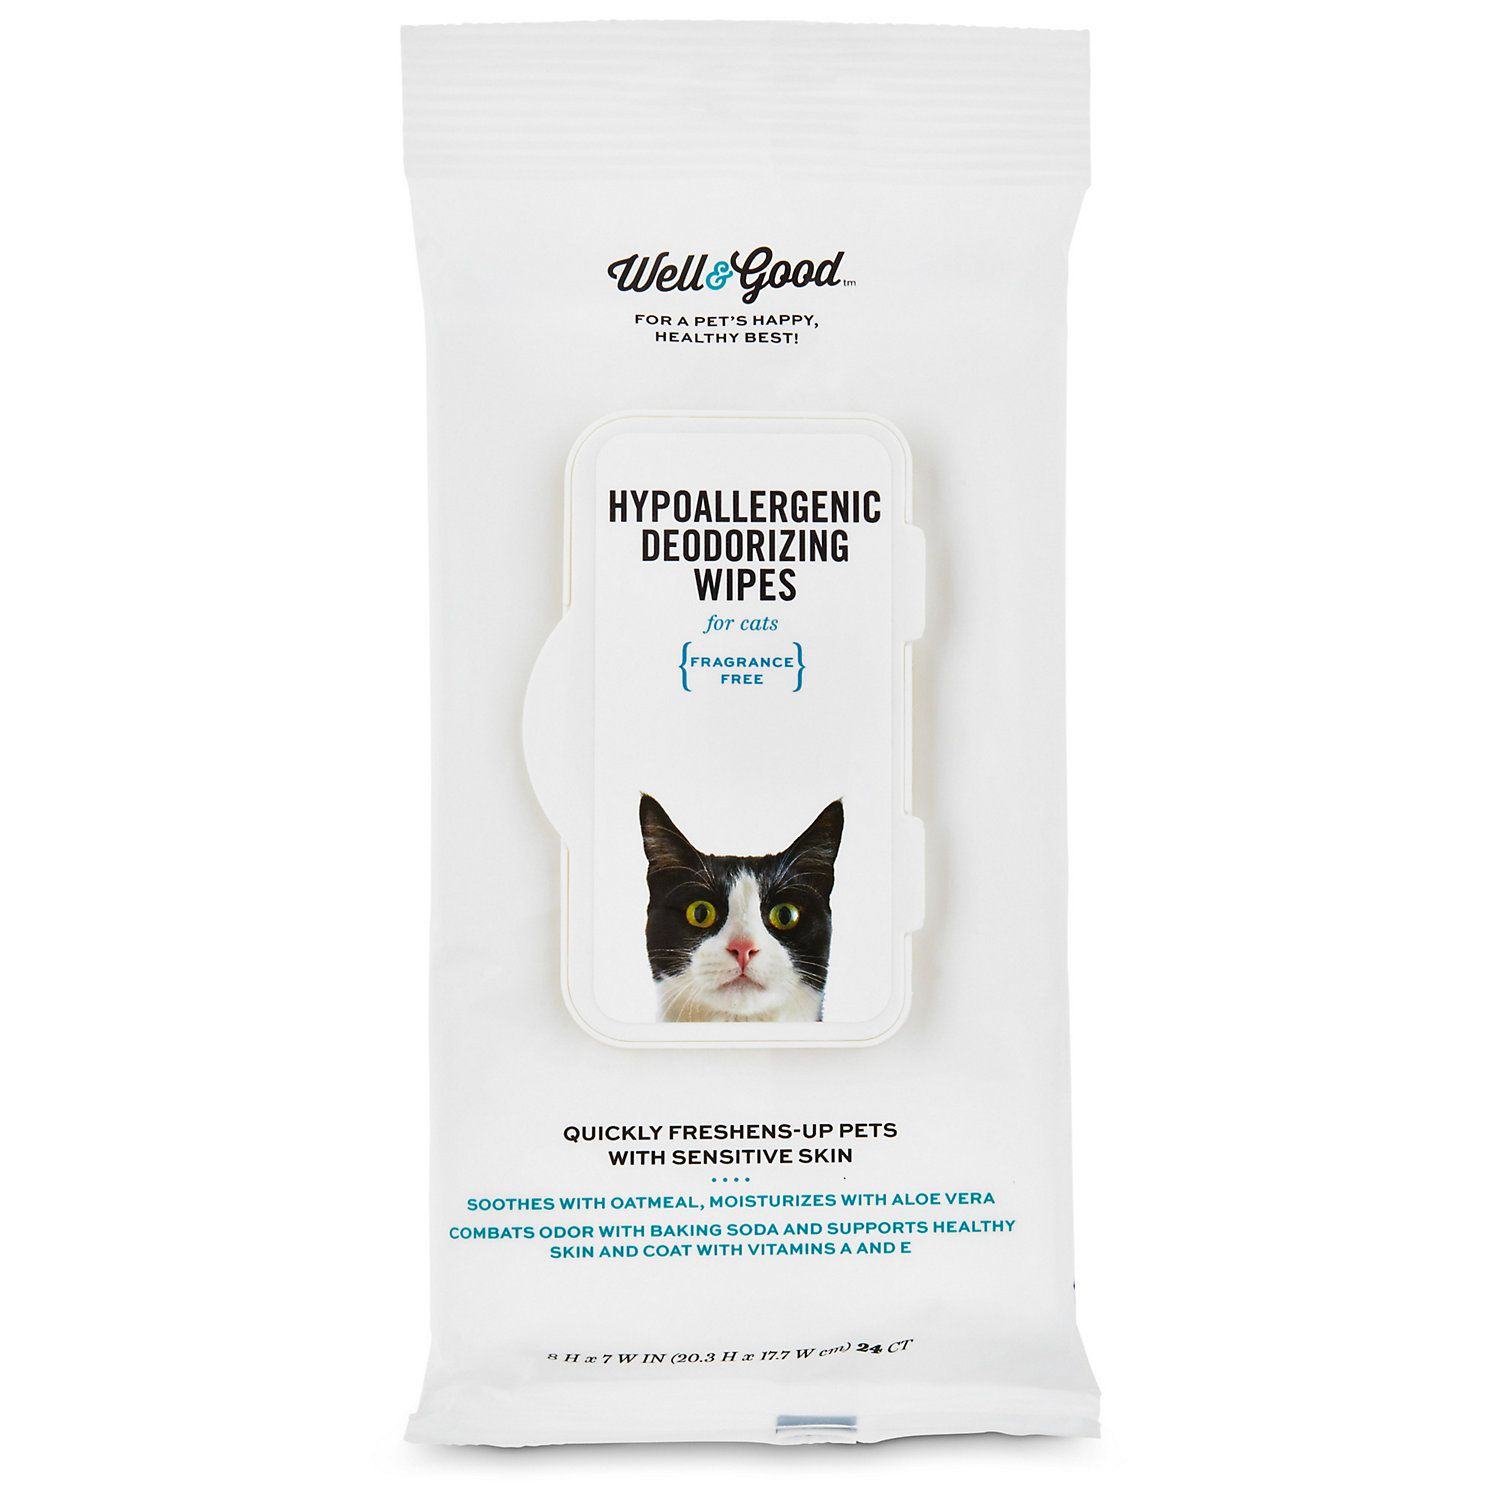 Well & Good Hypoallergenic Deodorizing Cat Wipes, Pack of